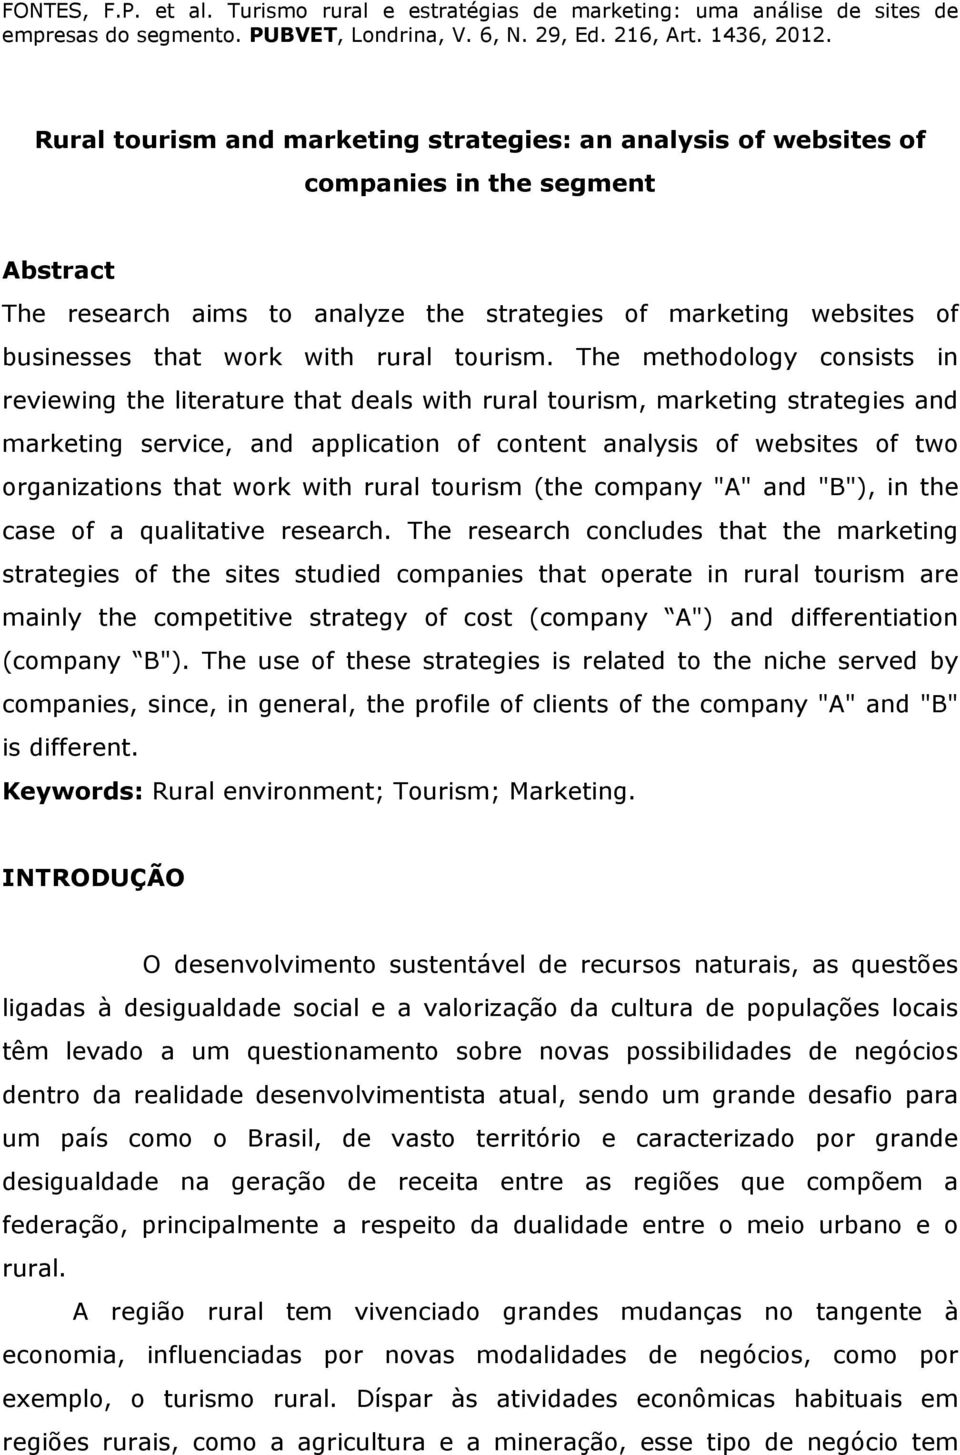 The methodology consists in reviewing the literature that deals with rural tourism, marketing strategies and marketing service, and application of content analysis of websites of two organizations